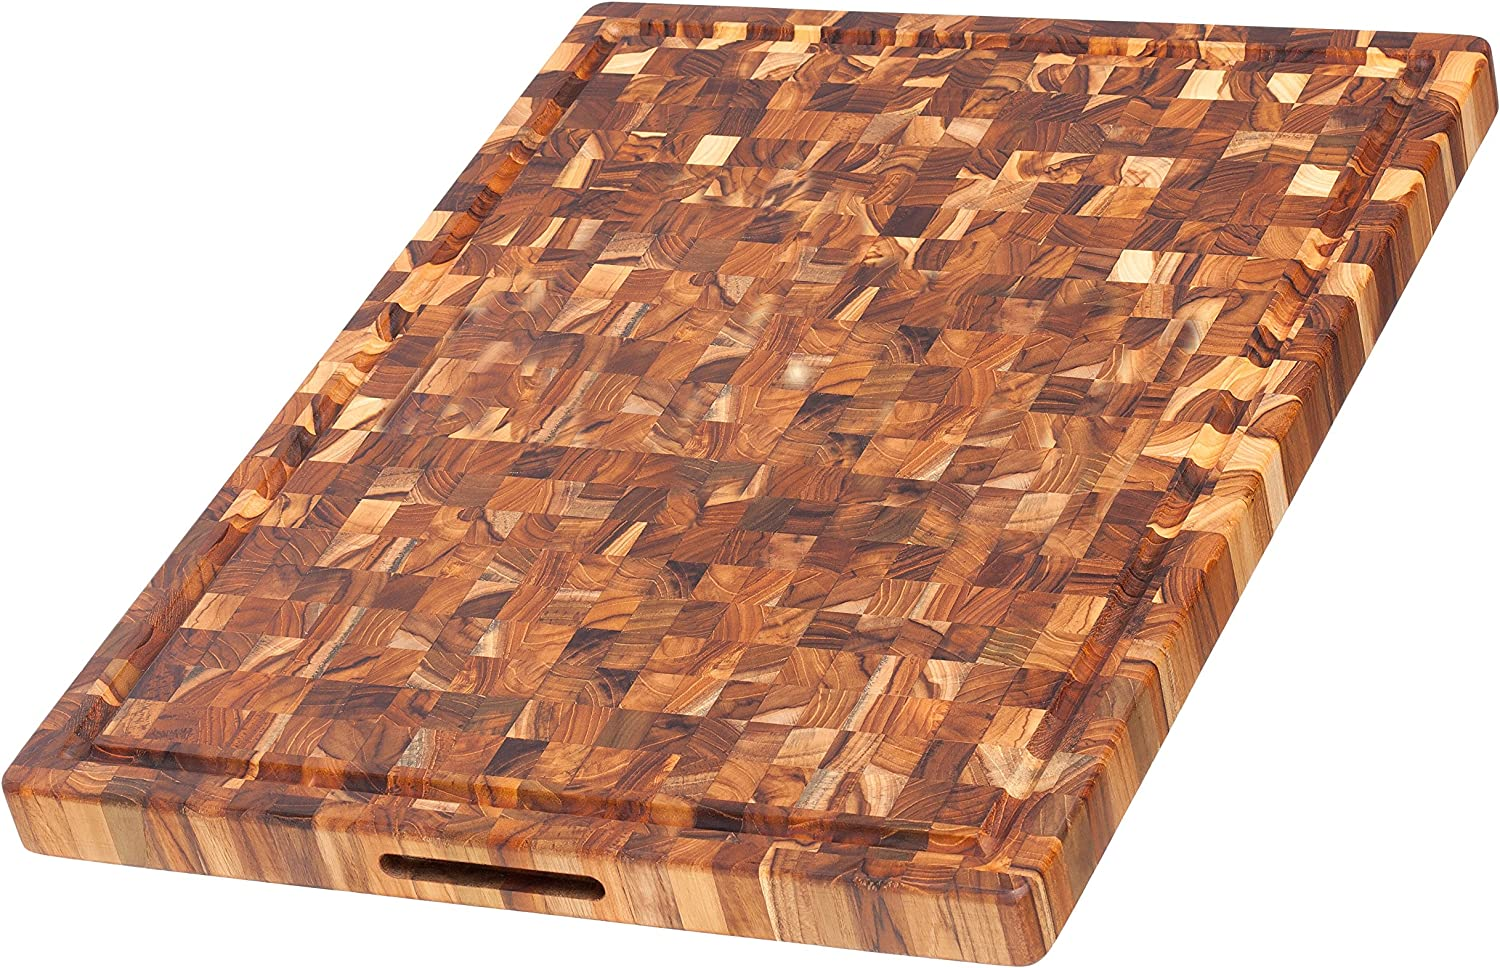 Teak Cutting Board Rectangle Butcher Block With Juice Canal And Hand Grips 24 X 18 X 1 5 In By Teakhaus Kitchen Dining Amazon Com